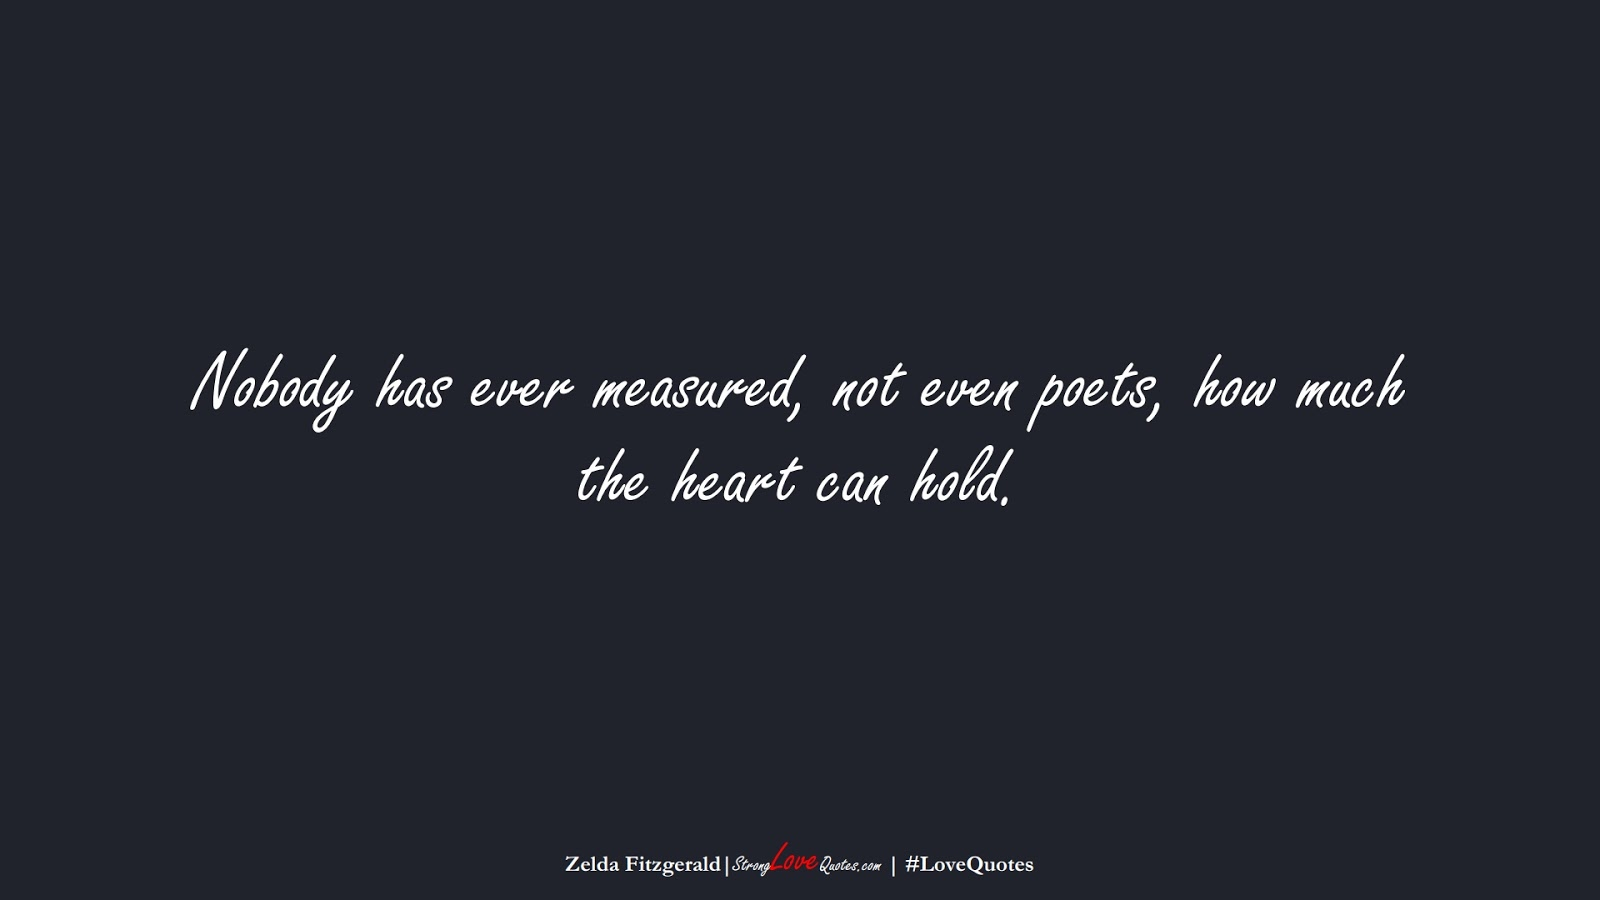 Nobody has ever measured, not even poets, how much the heart can hold. (Zelda Fitzgerald);  #LoveQuotes